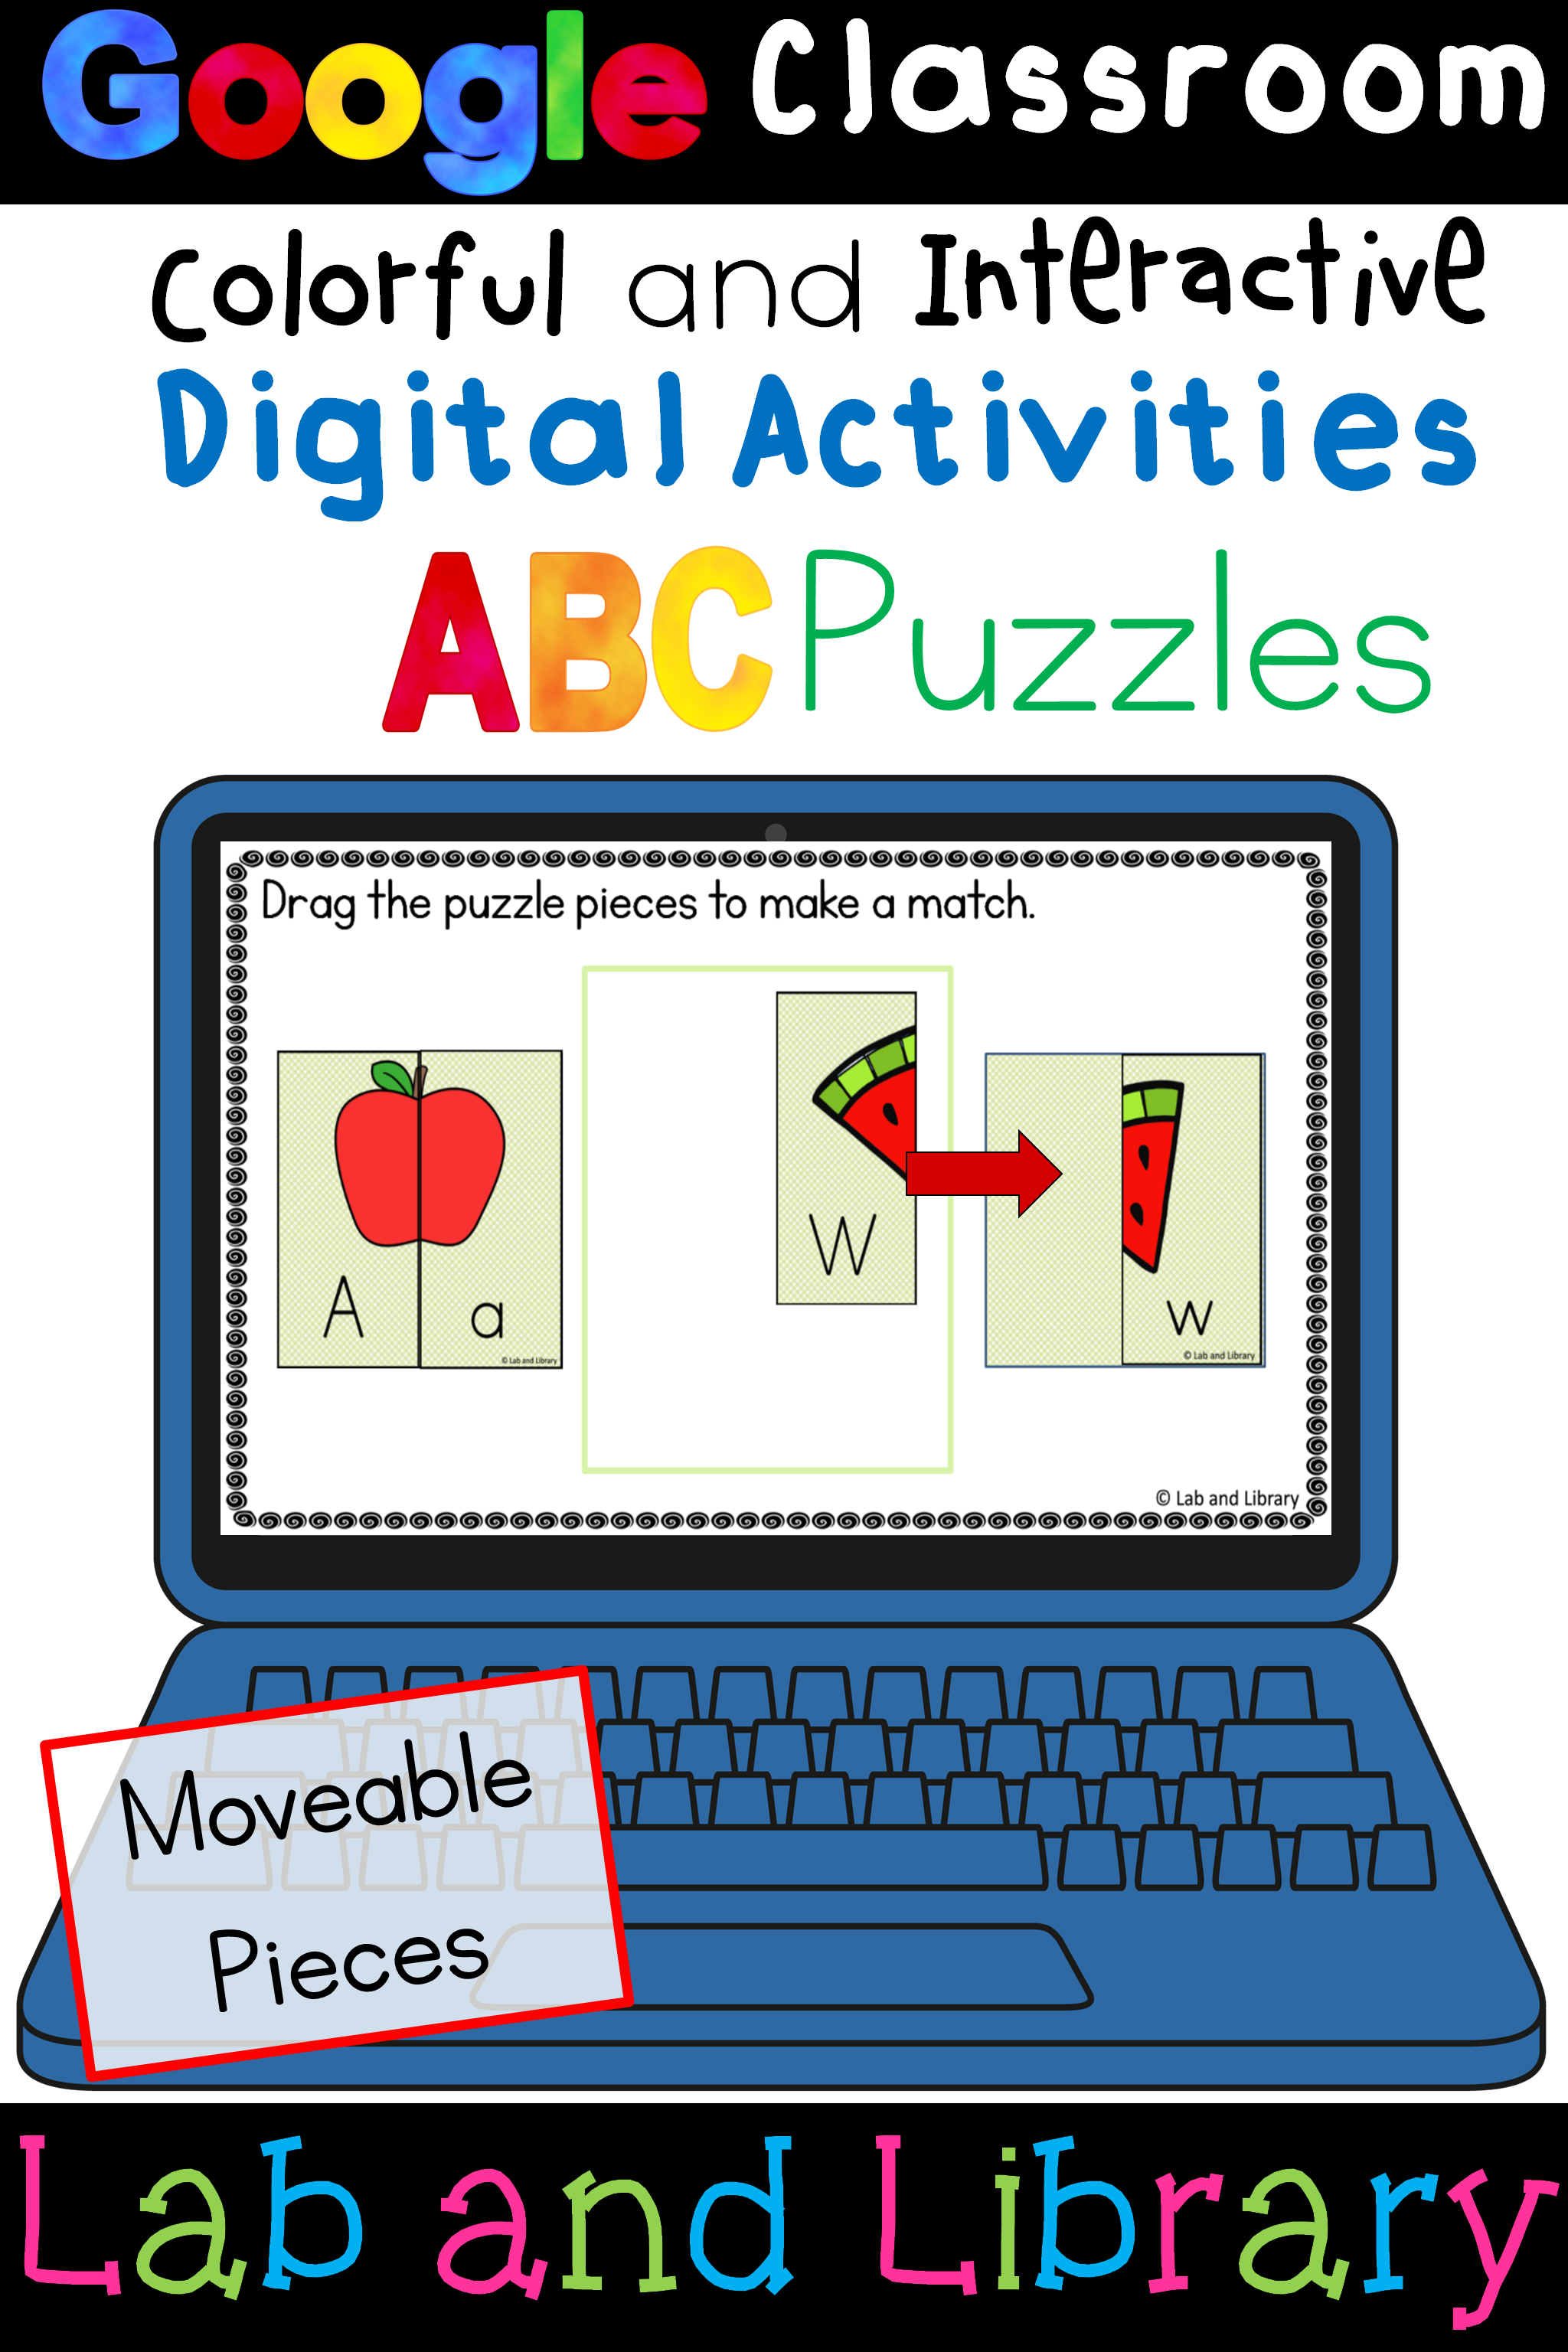 Abc Puzzles Digital Activities For Google Classroom Tpt Store